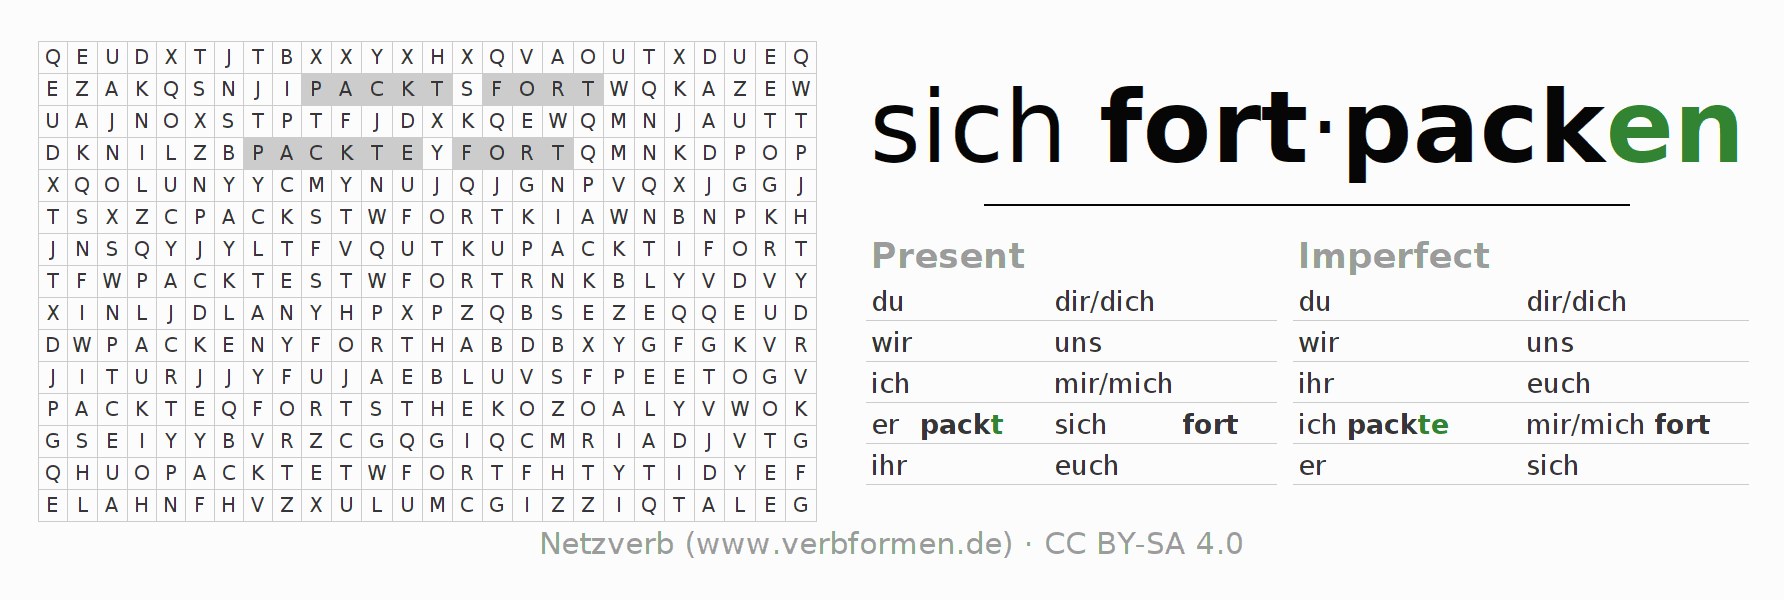 Word search puzzle for the conjugation of the verb sich fortpacken